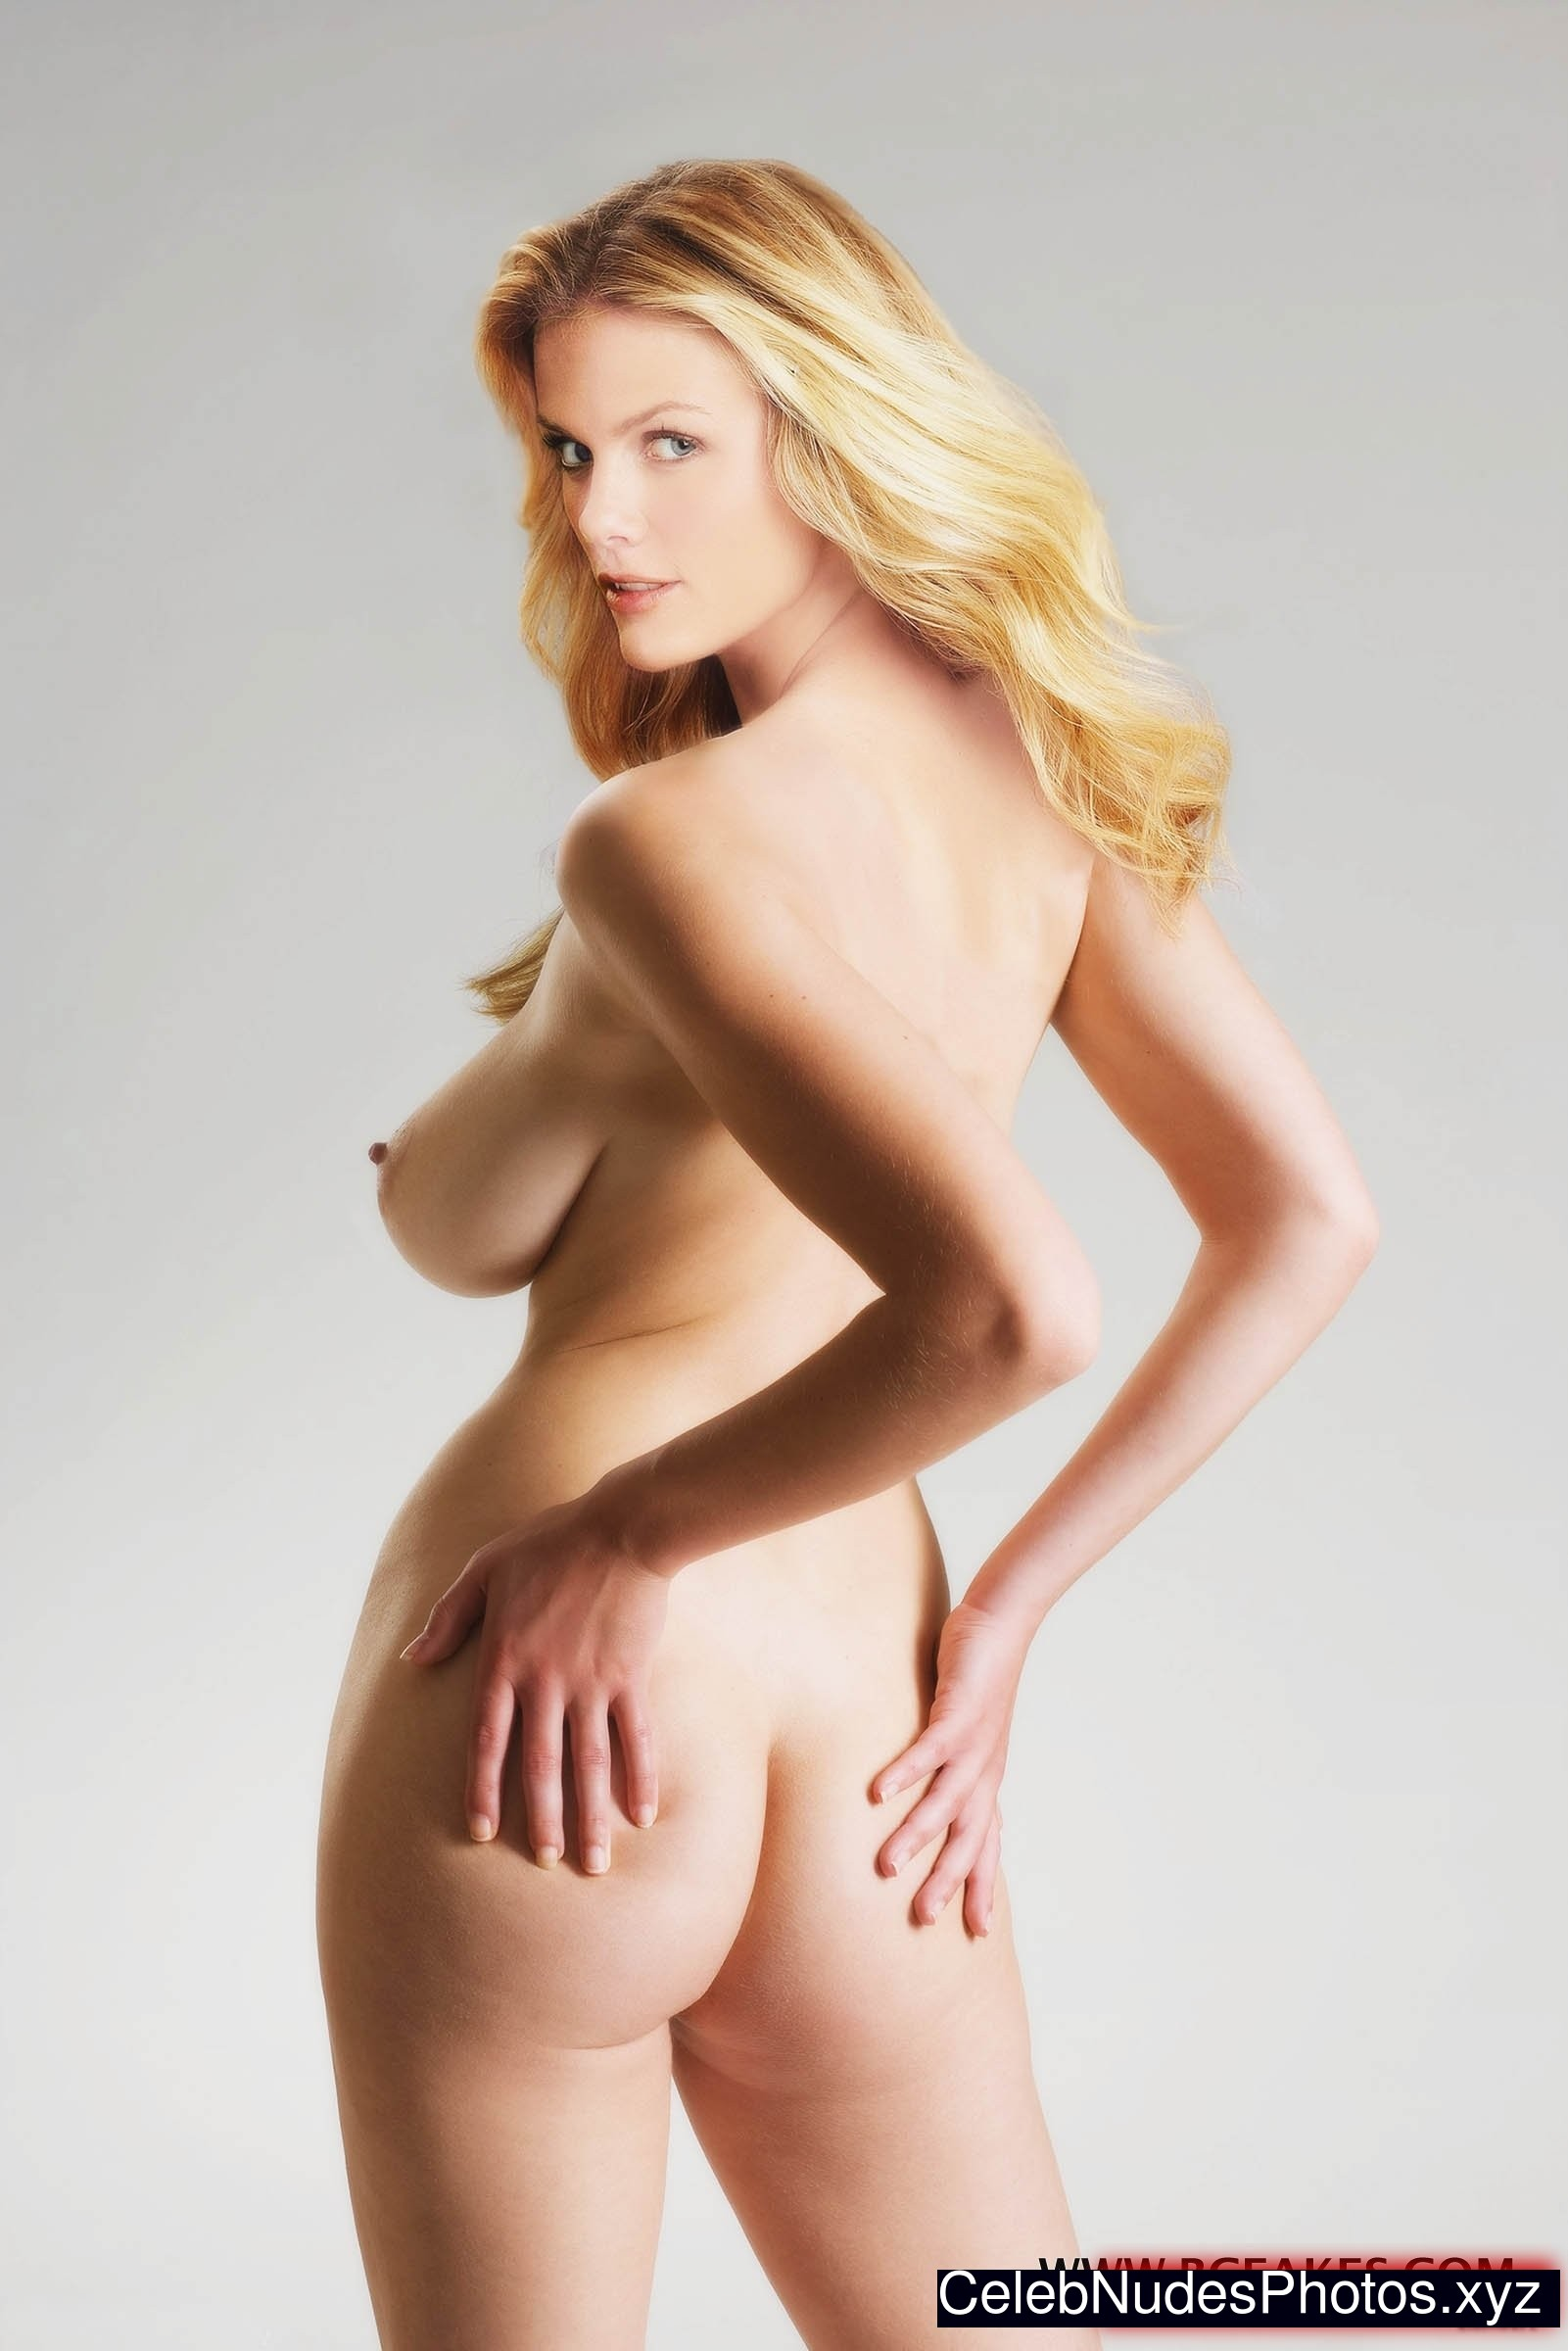 Necessary the Brooklyn decker nude real think